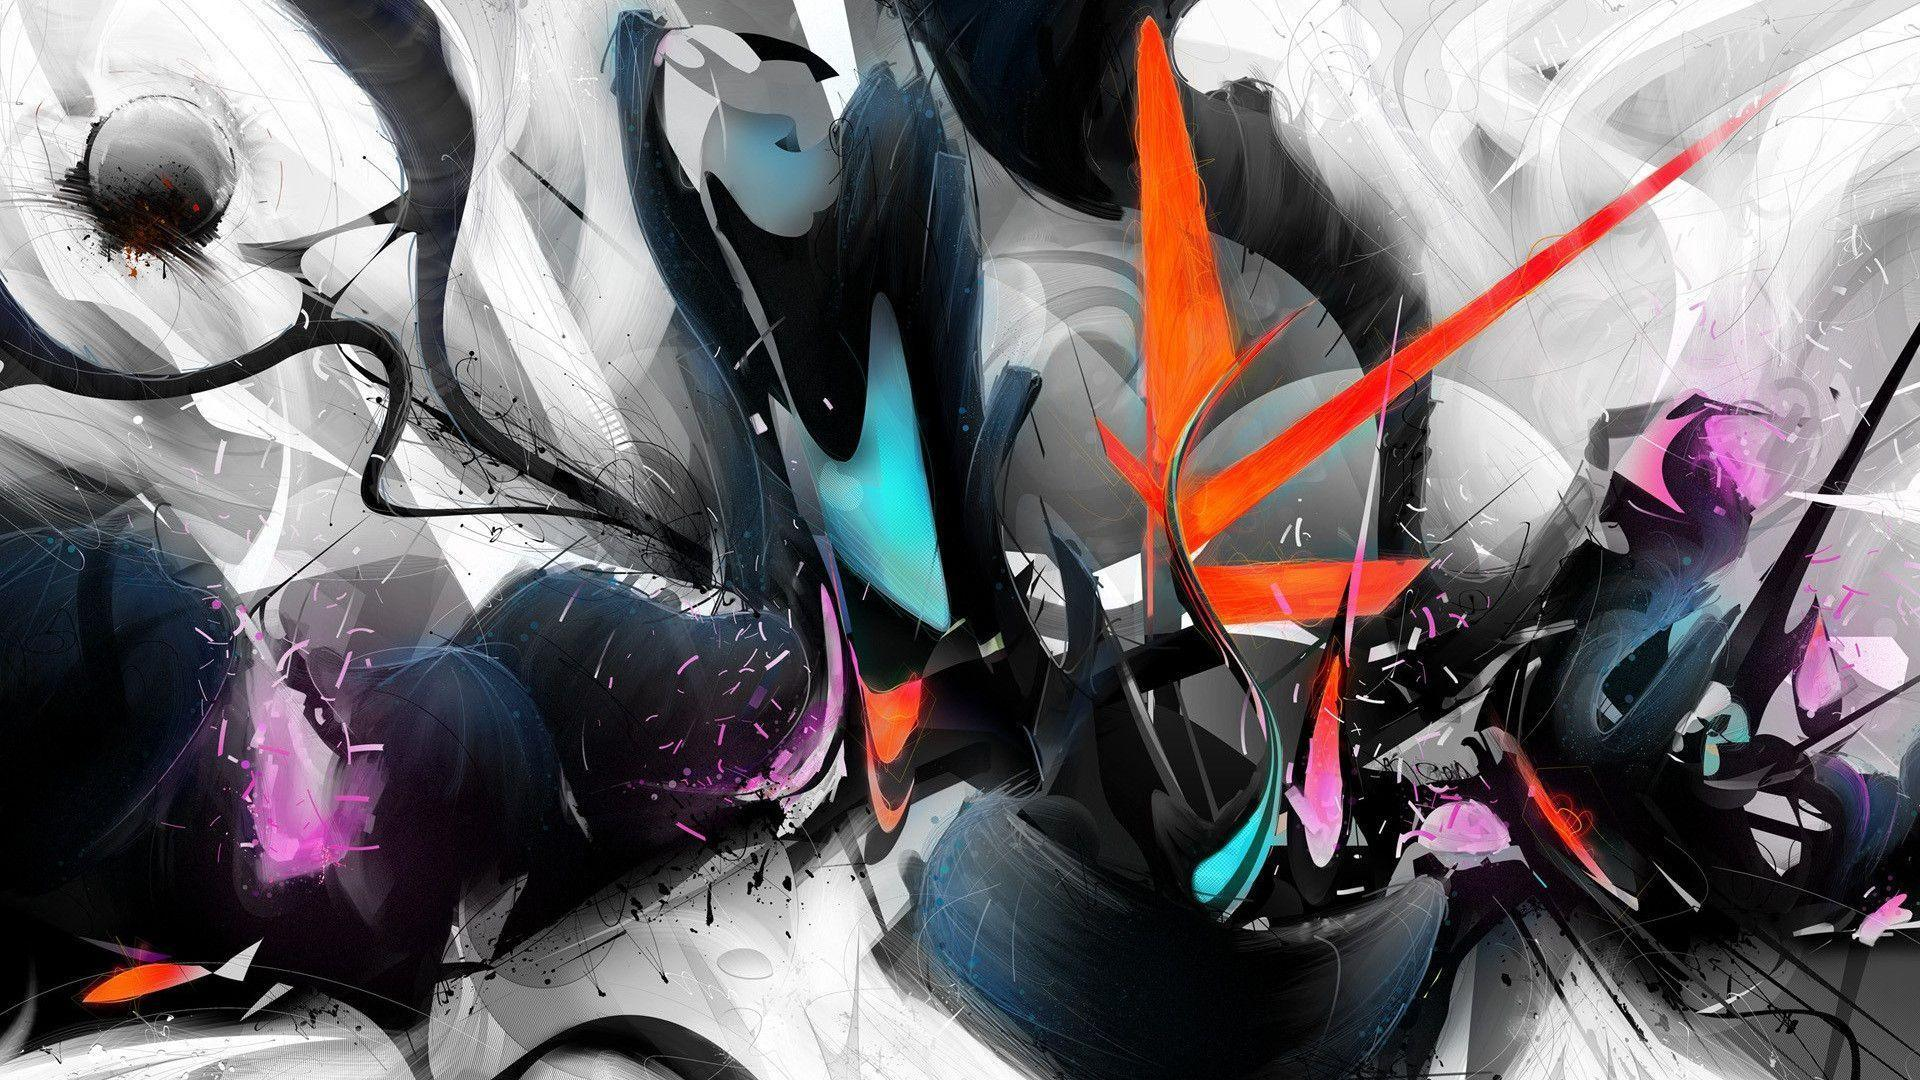 Cool Abstract Art Designs Hd Wallpaper Background Images: Street Art Wallpapers